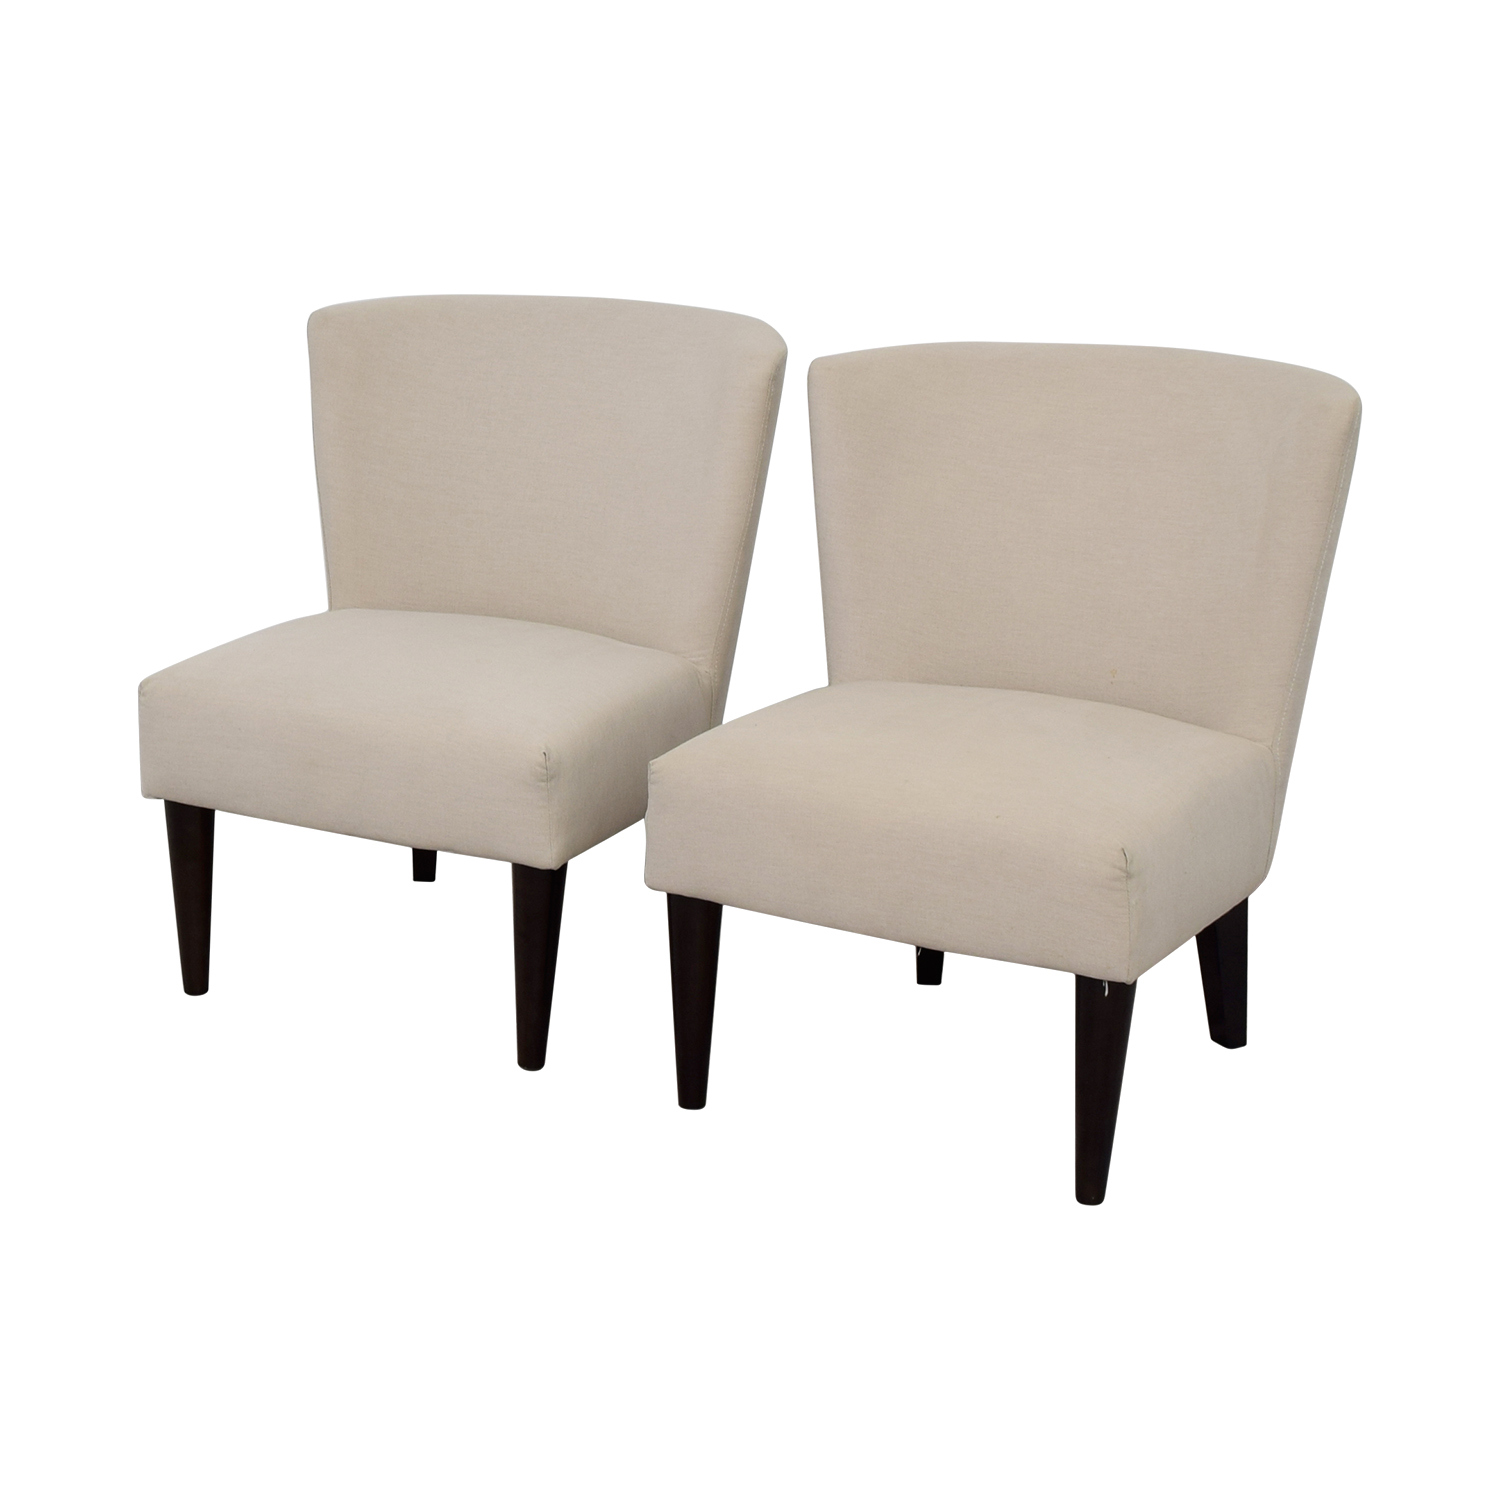 West Elm West Elm Retro Cream Chairs coupon